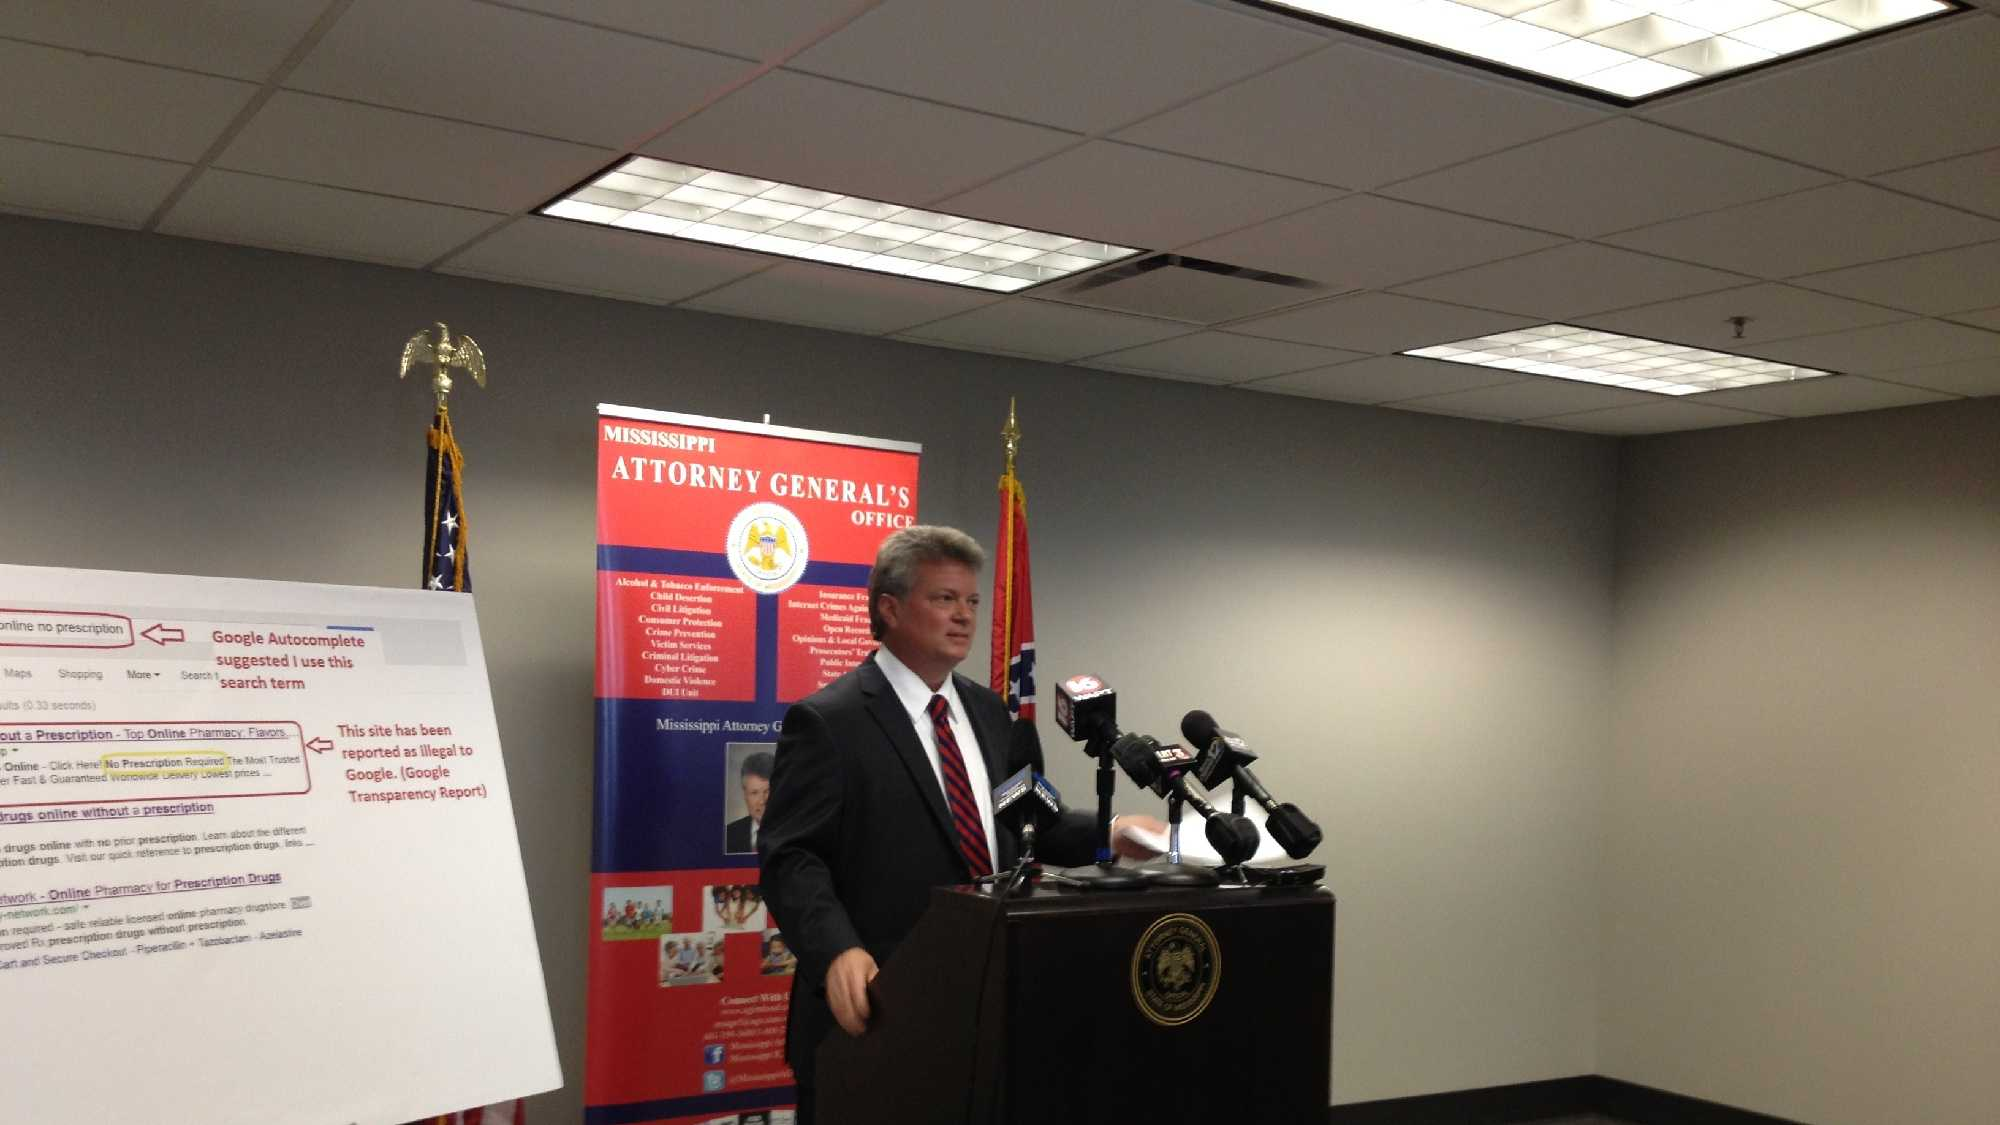 Mississippi Attorney General Jim Hood voiced his concerns about Google during a news conference on June 6.